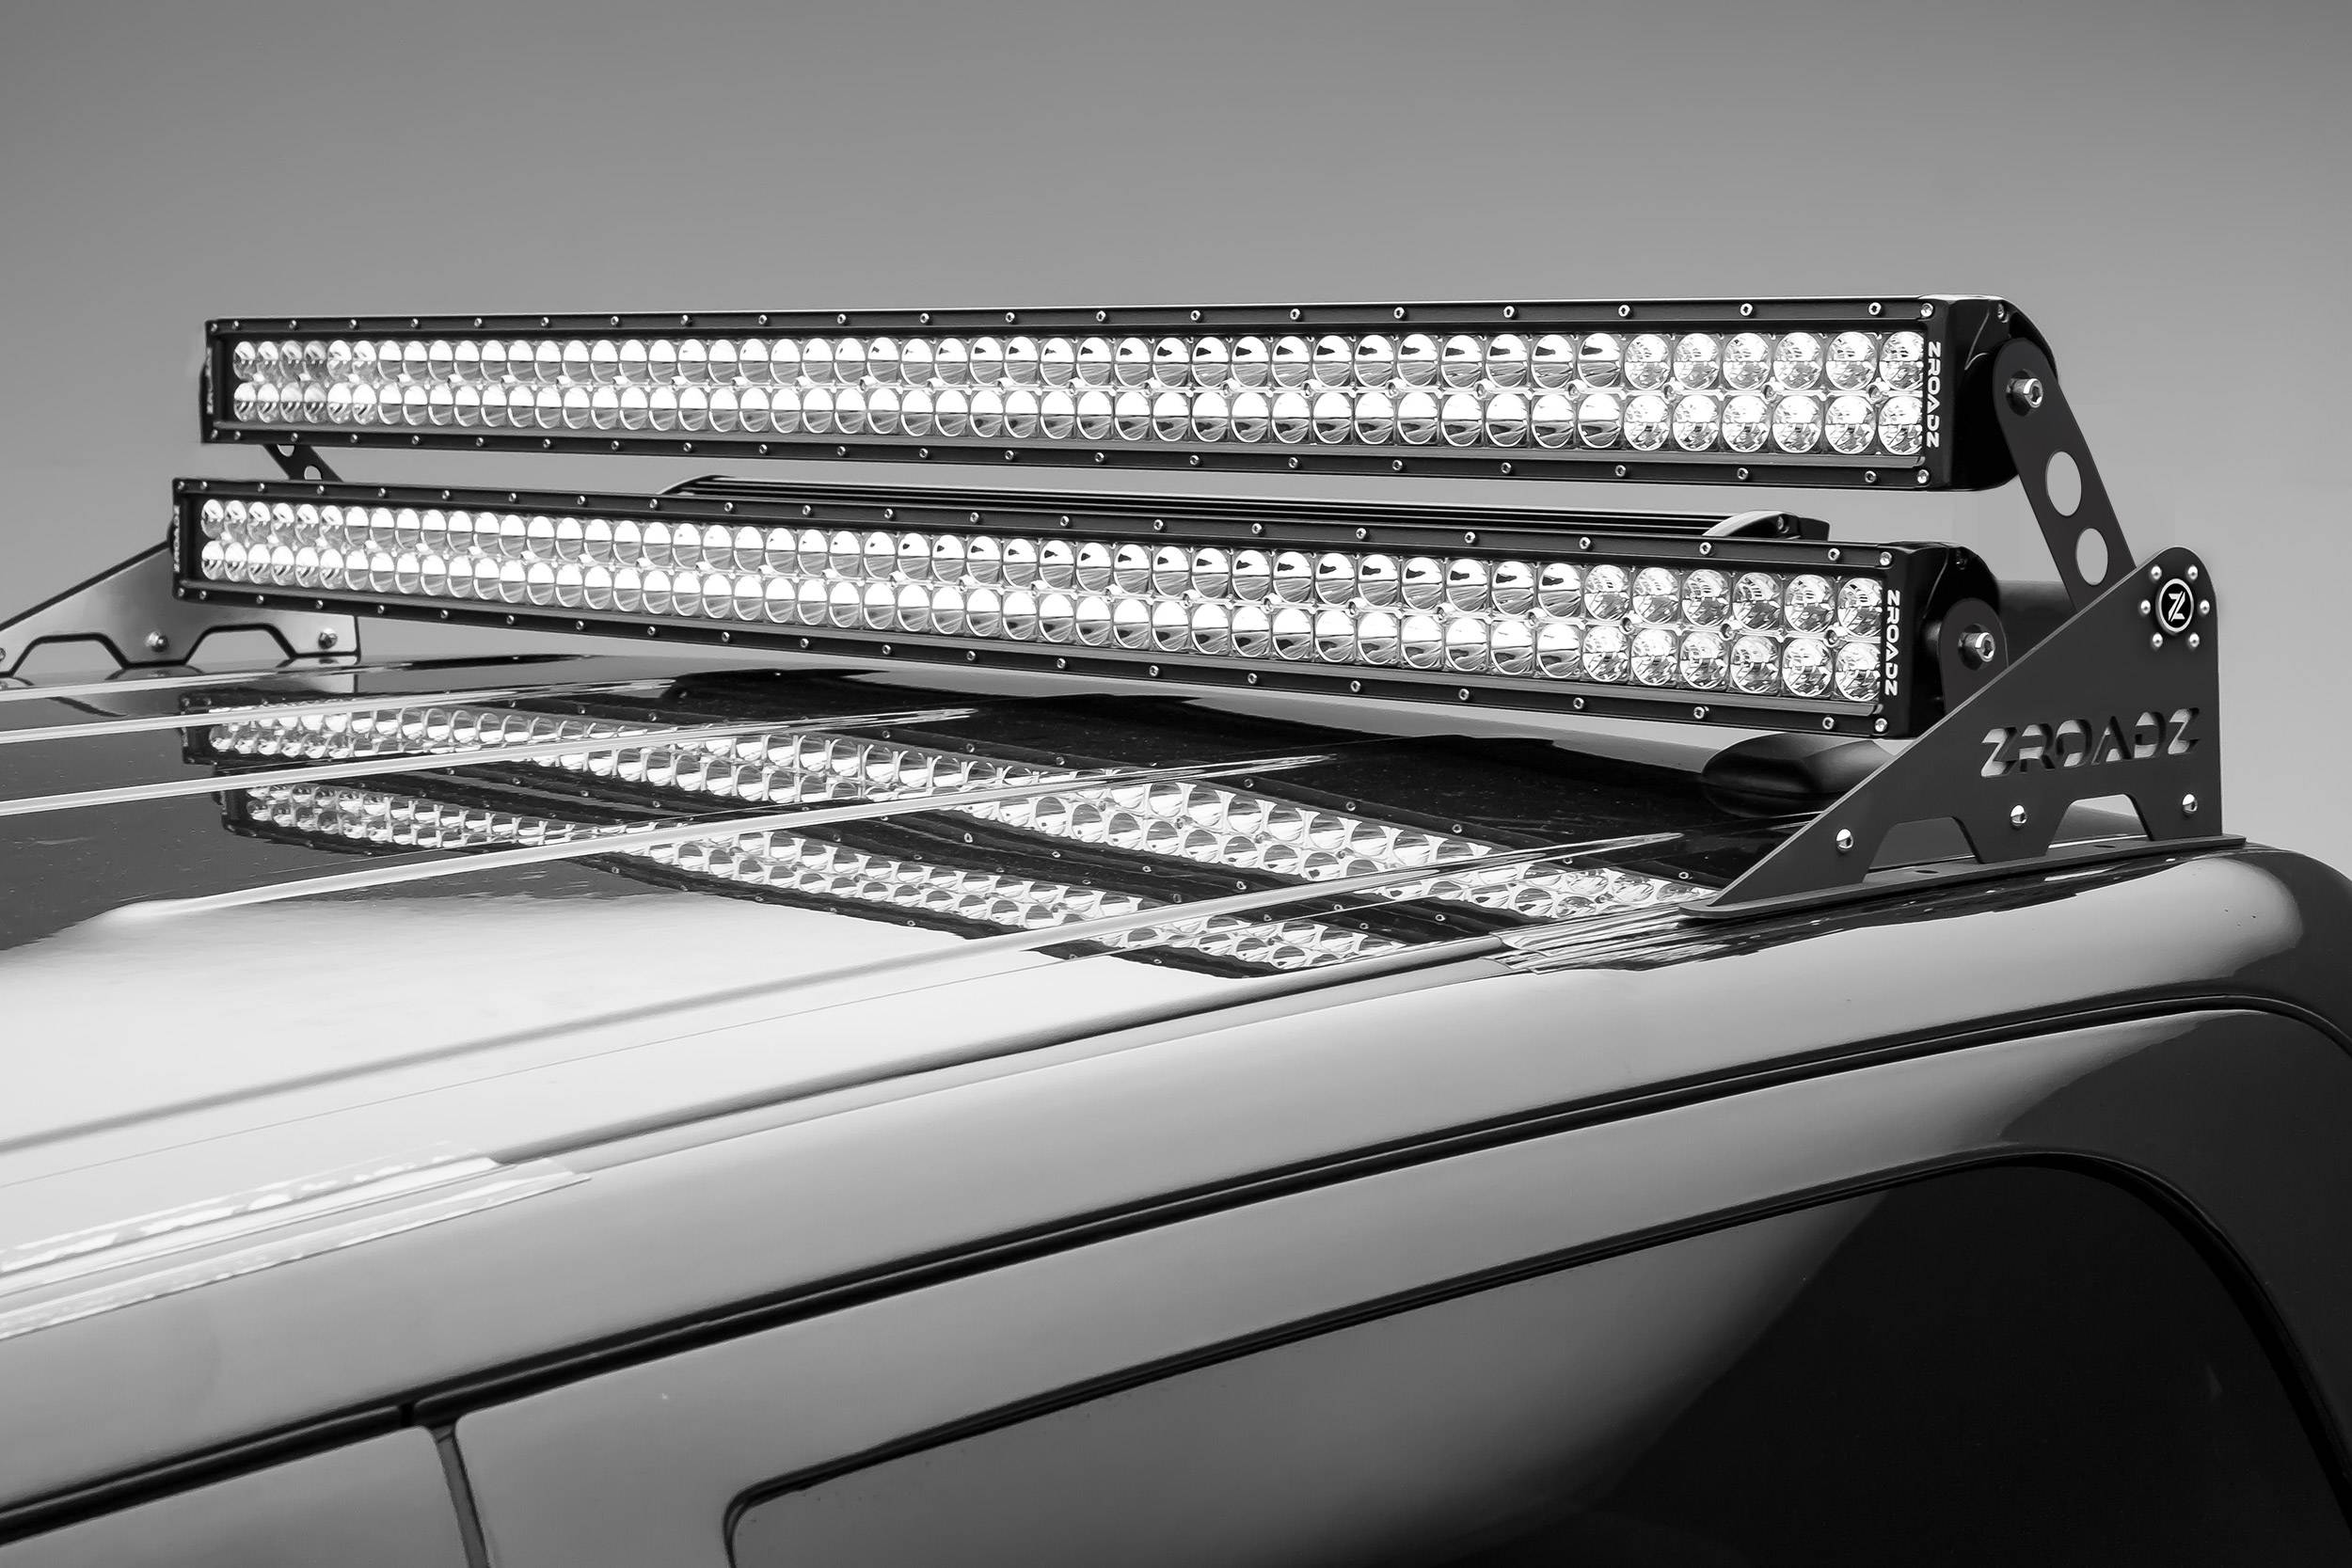 Universal Roof Mount Led Bracket Accessory To Add And Install Dual Stacked Straight Led Light Bar Pn Z350002